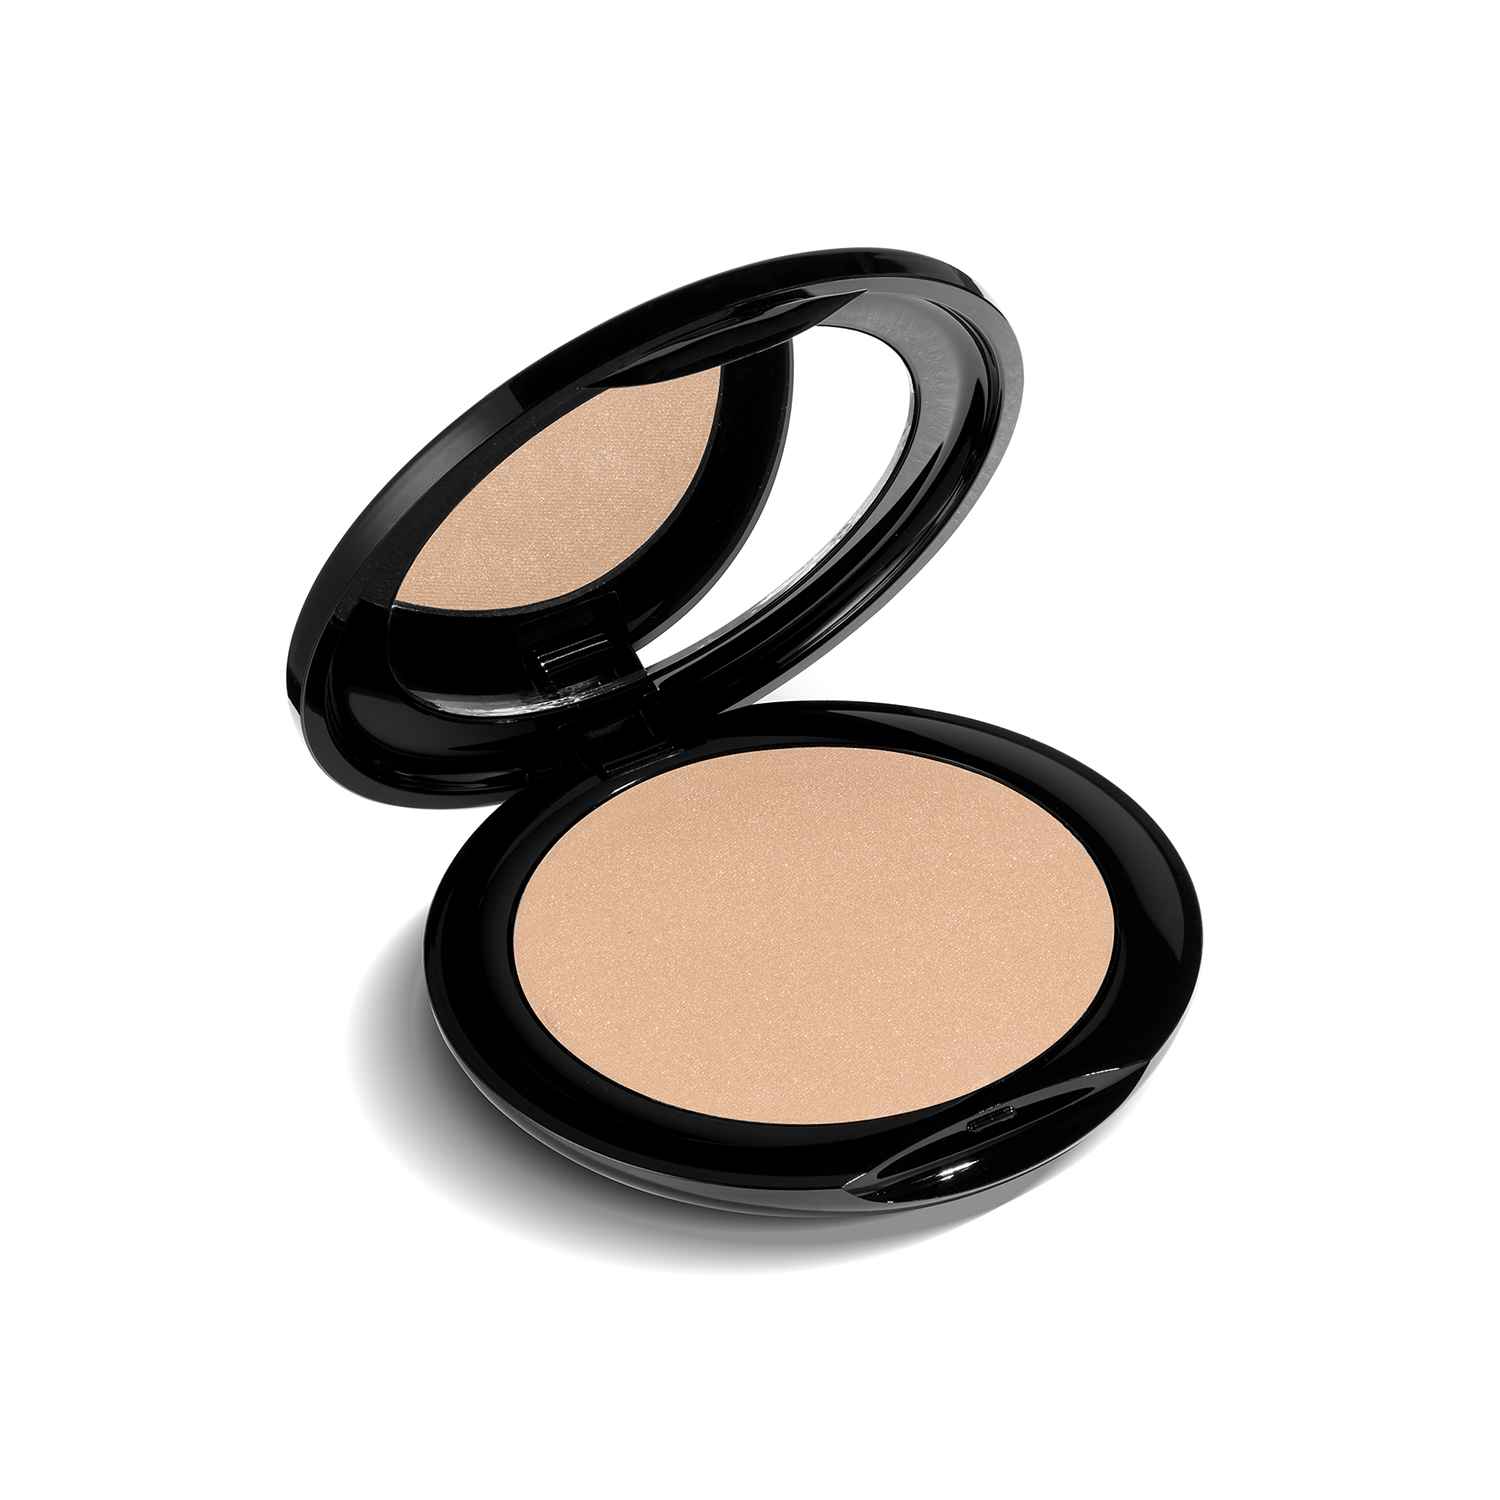 PERFECT FINISH COMPACT FACE POWDER (12 Skin Tone)